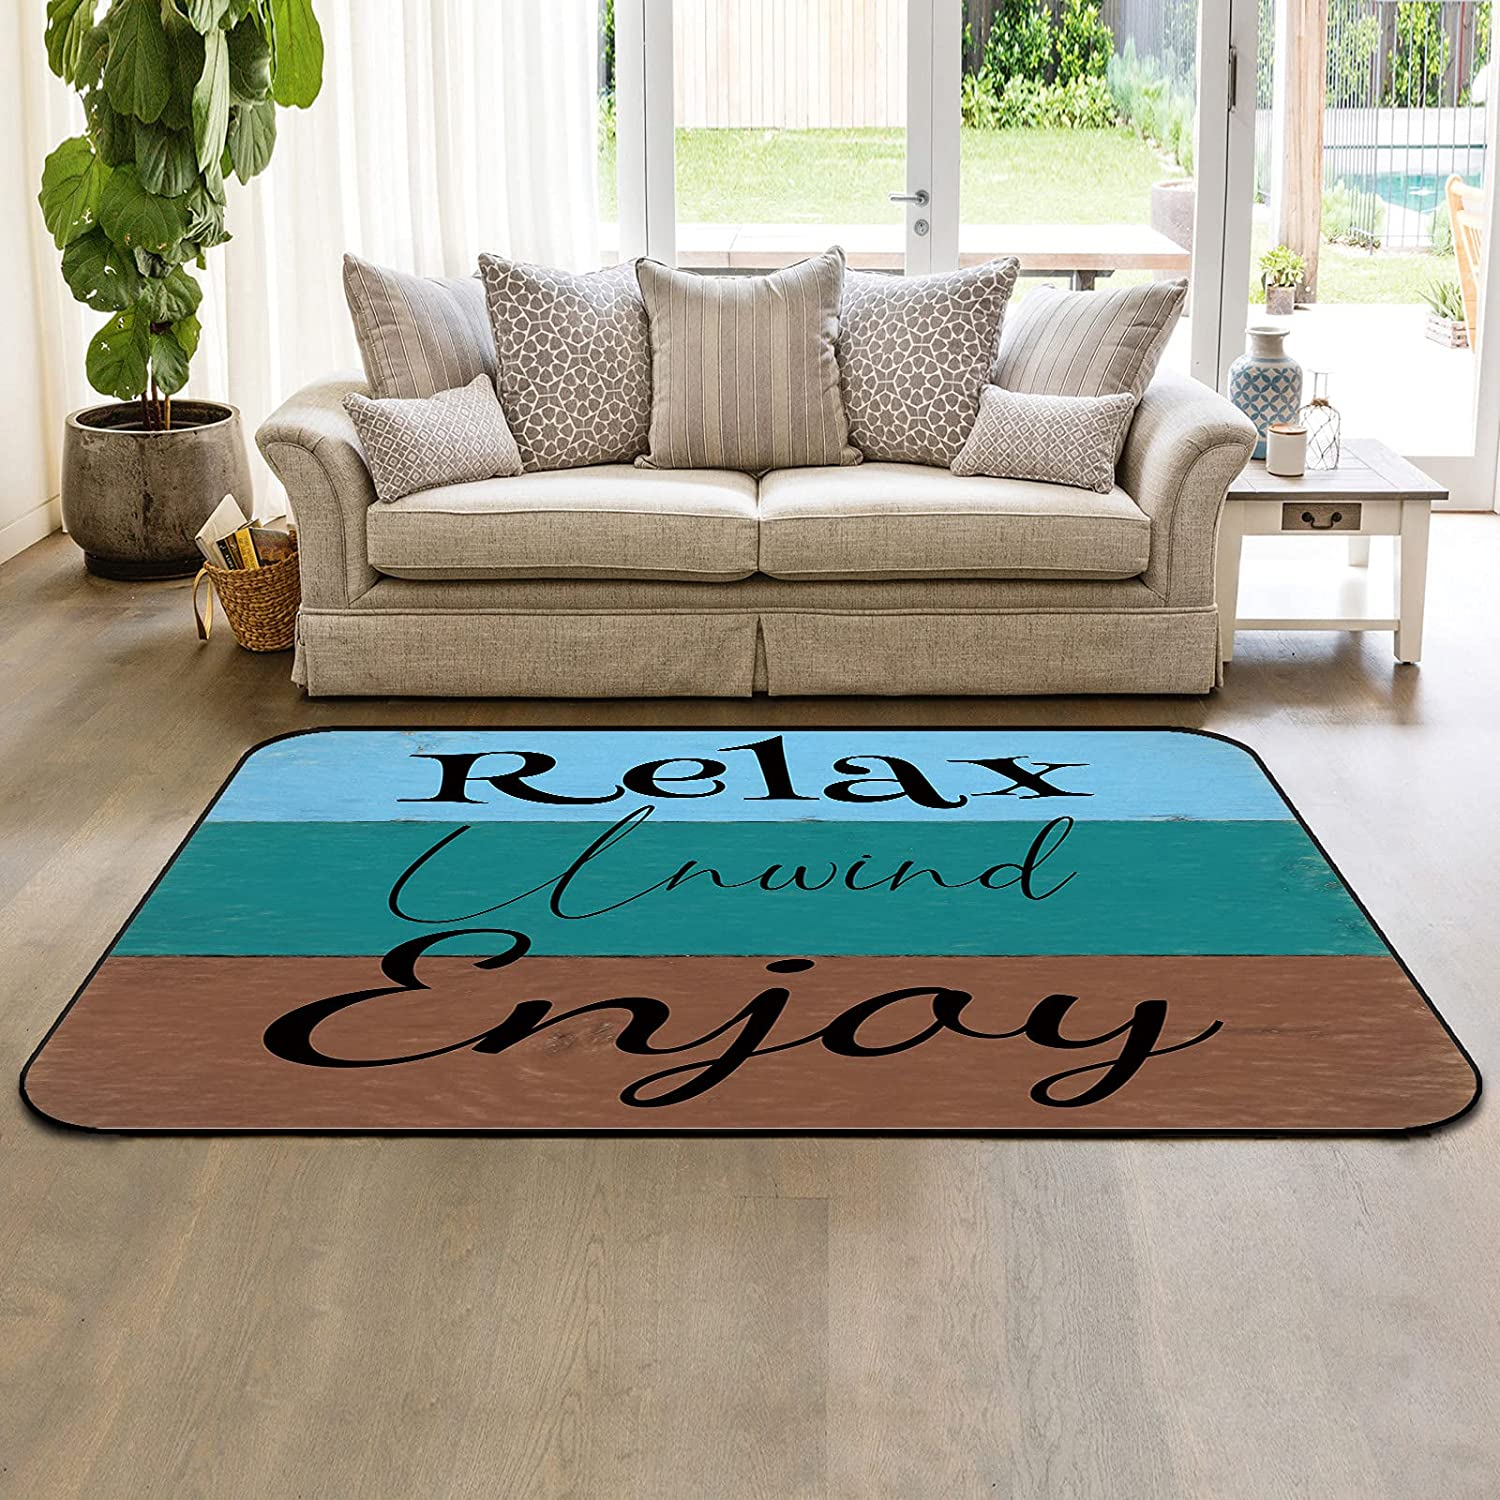 Indoor Anti-Slip Area Rugs for Bedroom Popular brand in the world S Room Relax Enjoy Living ! Super beauty product restock quality top!